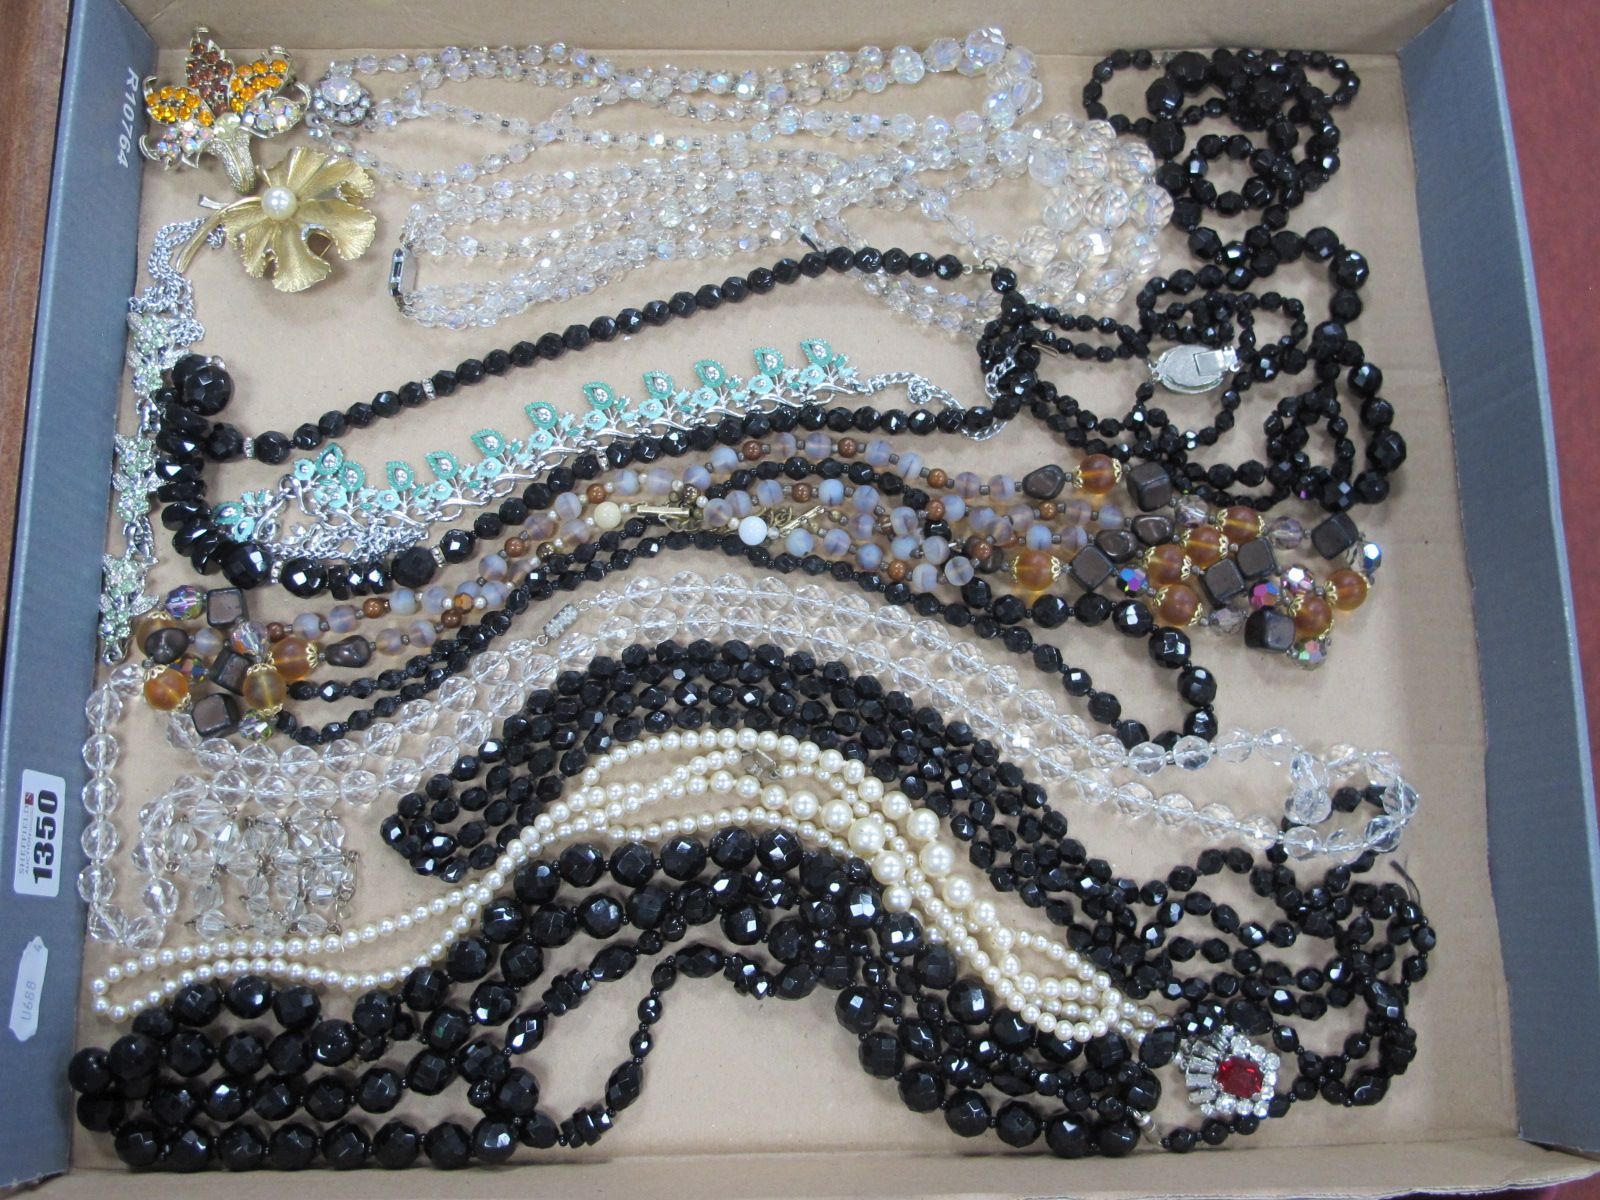 Necklaces - black and clear bead, faux pearl, two brooches, etc.